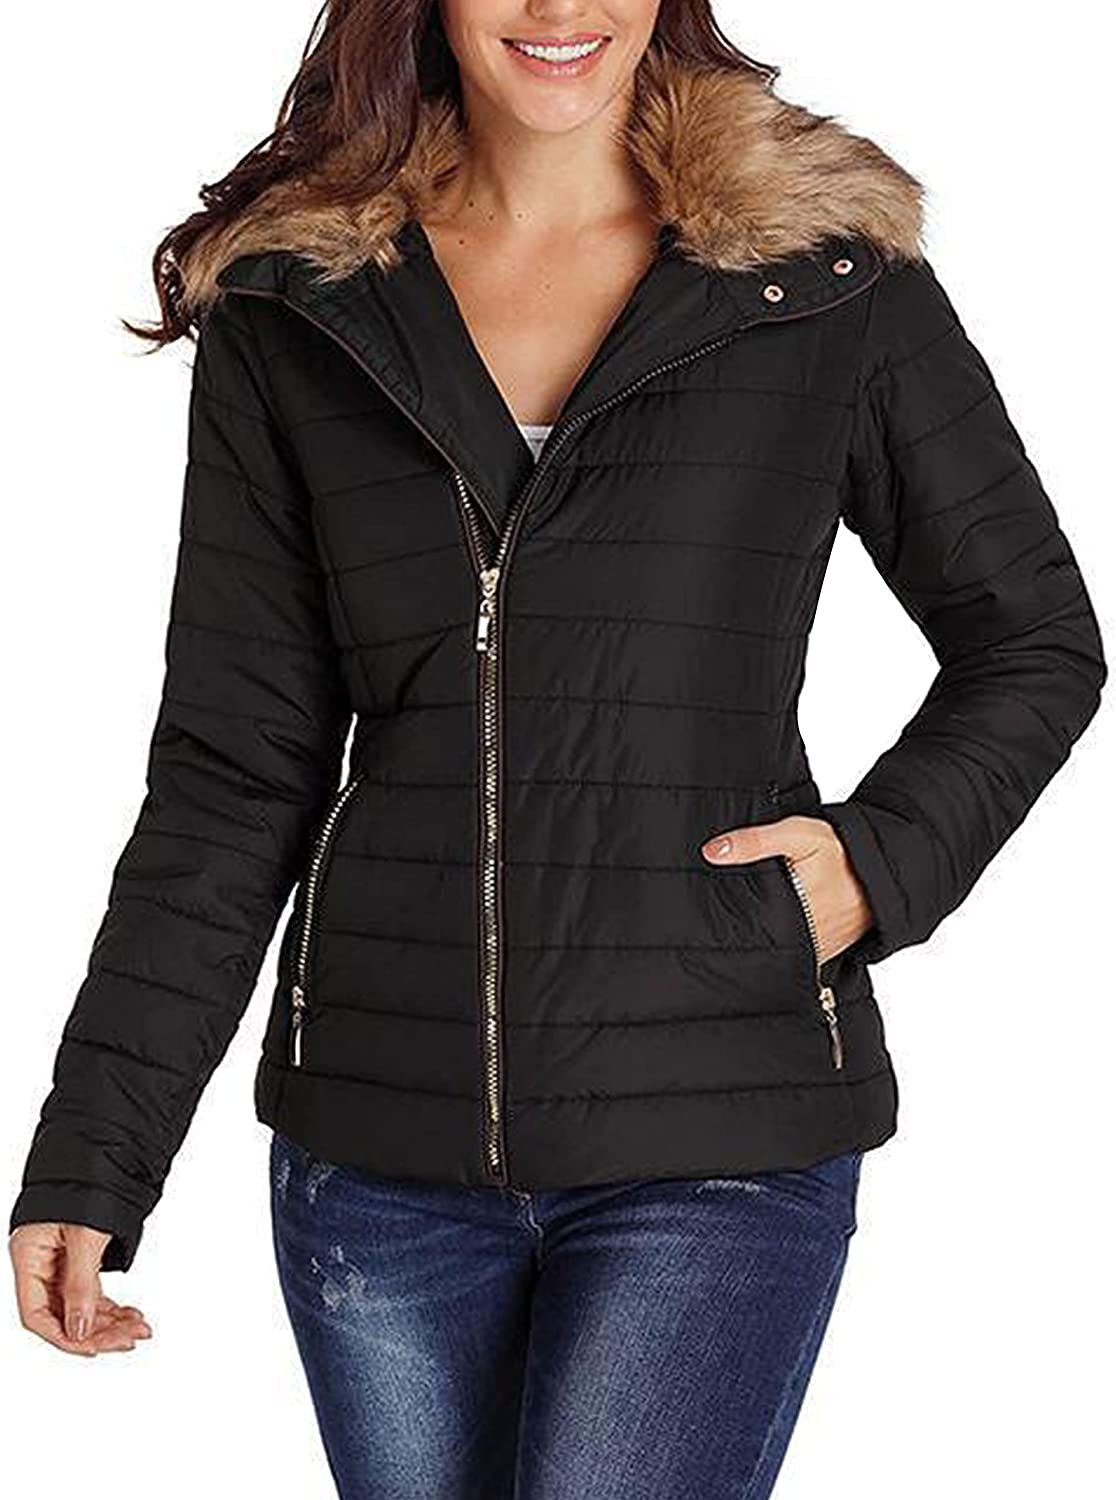 Mingzhu Women's Quilted Lightweight Padded Jackets Faux Fur Collar Outerwear